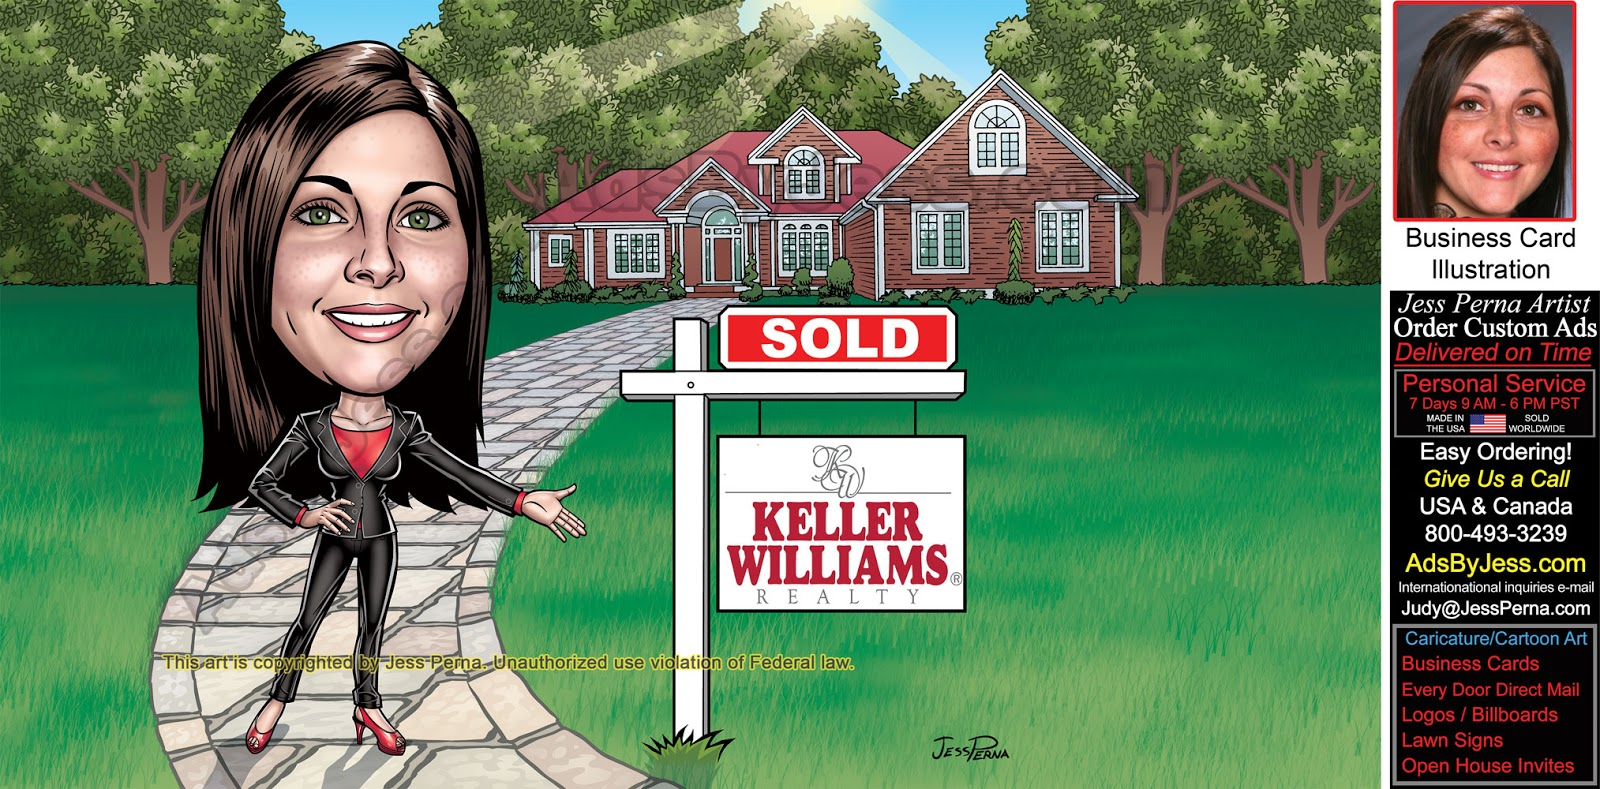 Keller williams business cards june 2017 kw real estate agent caricature sold sign magicingreecefo Gallery